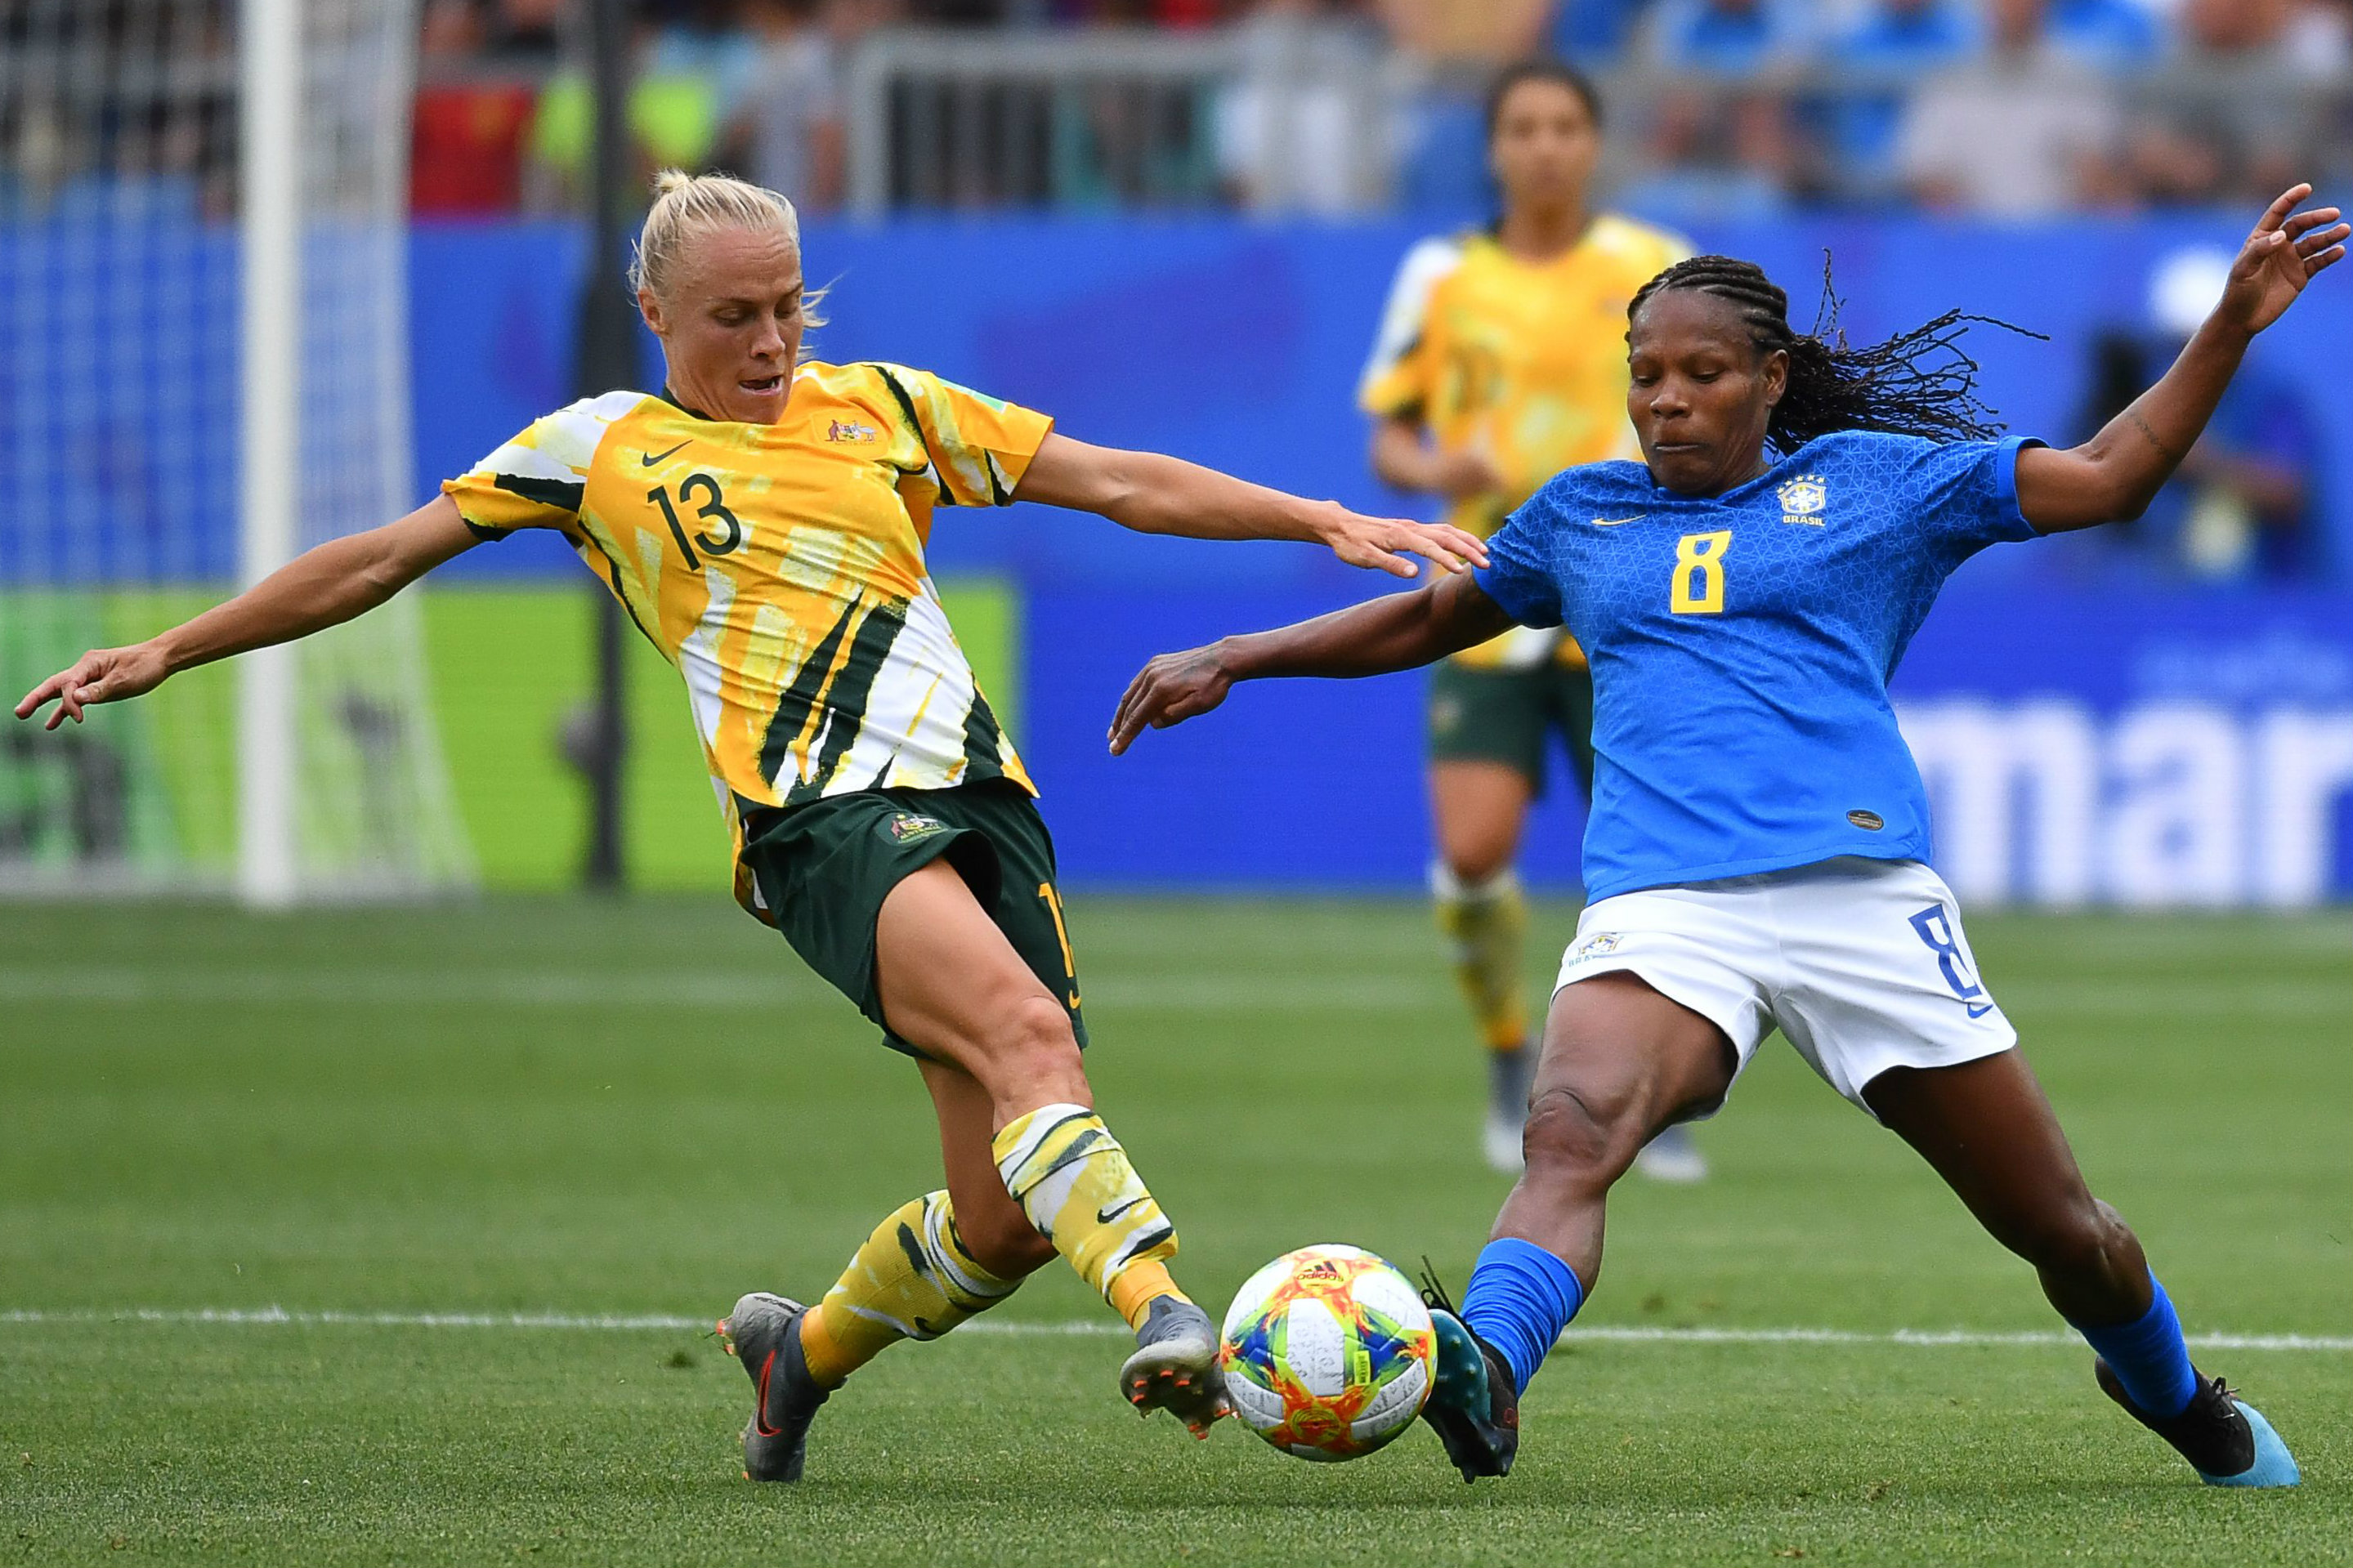 Tameka Yallop was everywhere in midfield for the Matildas